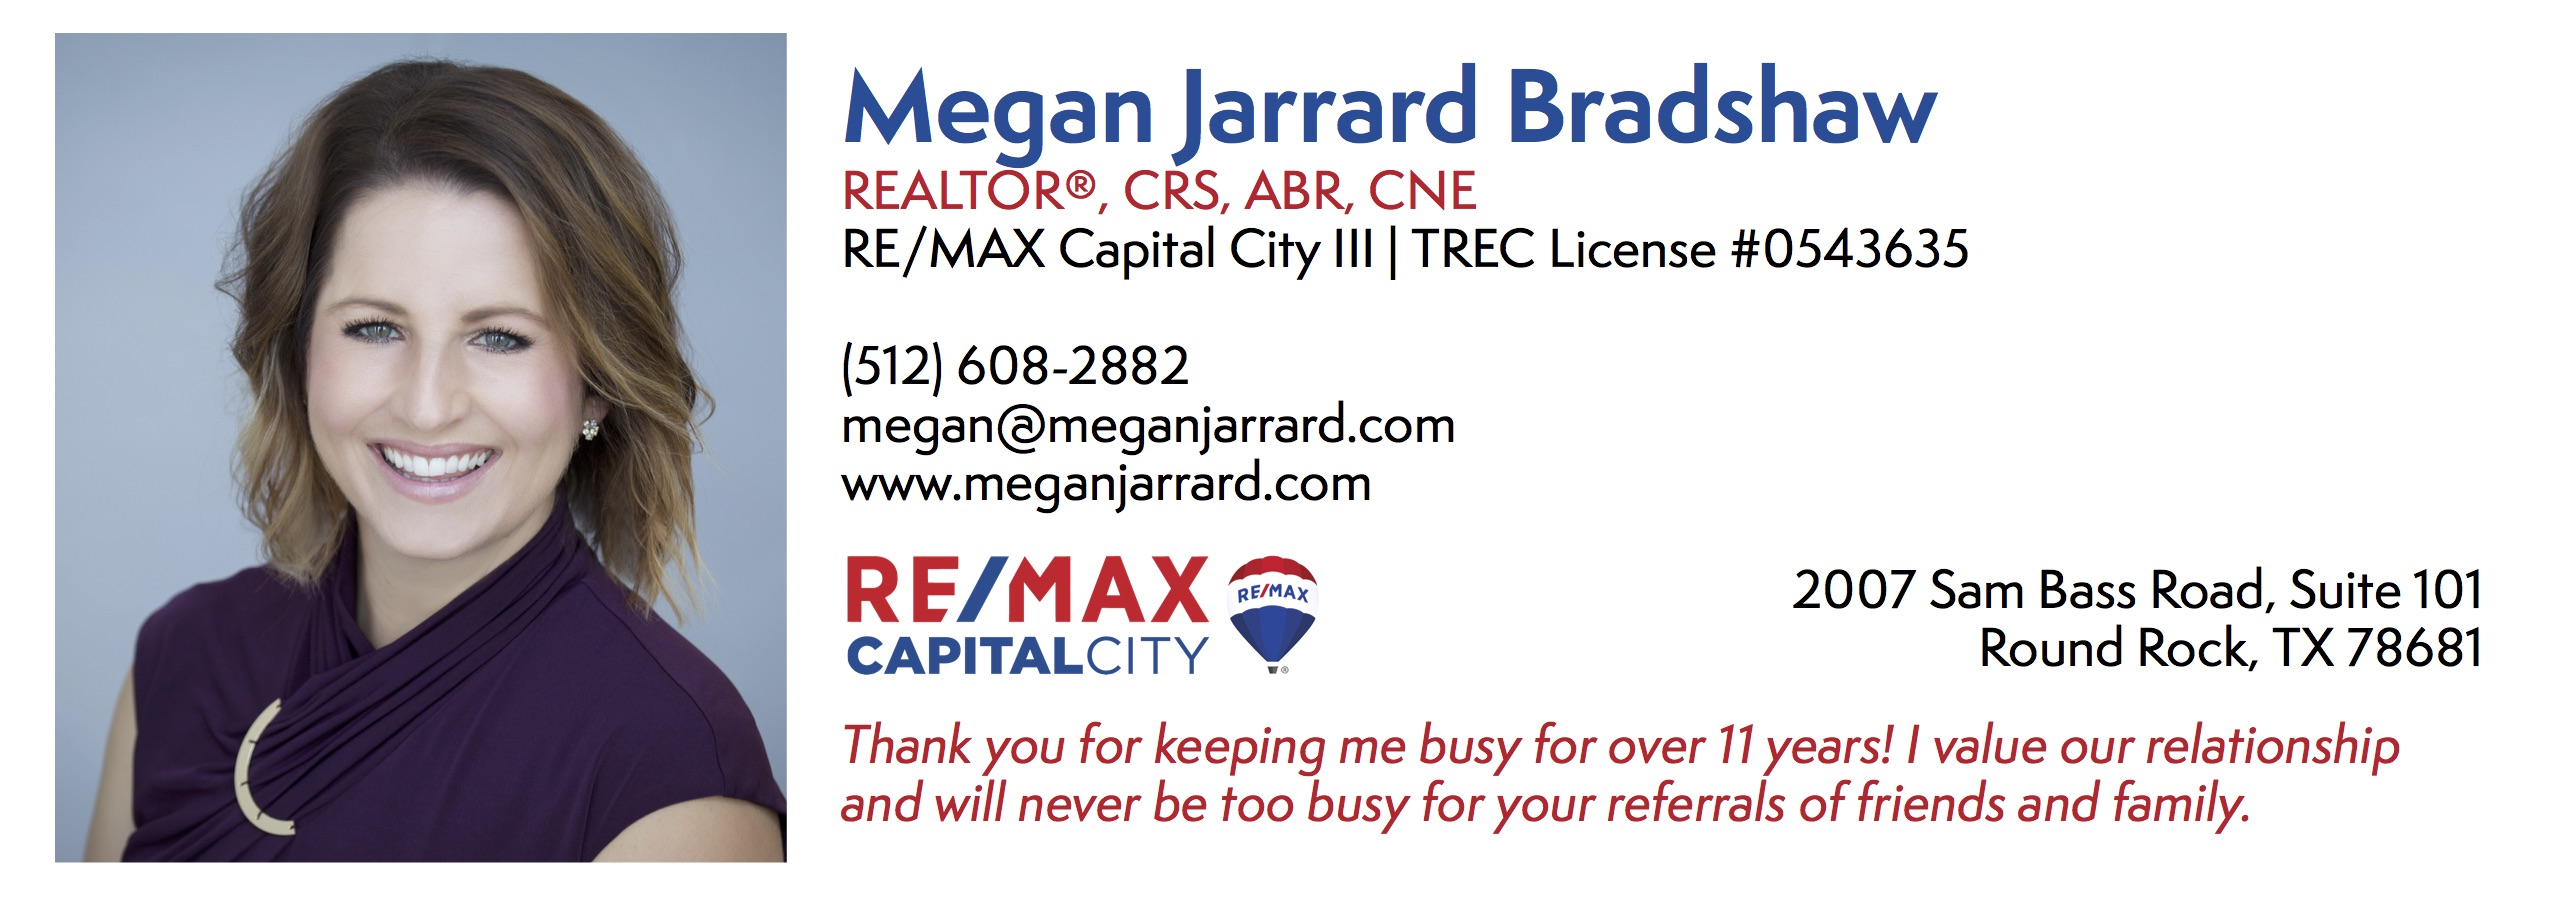 Customized REALTOR® email signatures RE/MAX Agent Operations